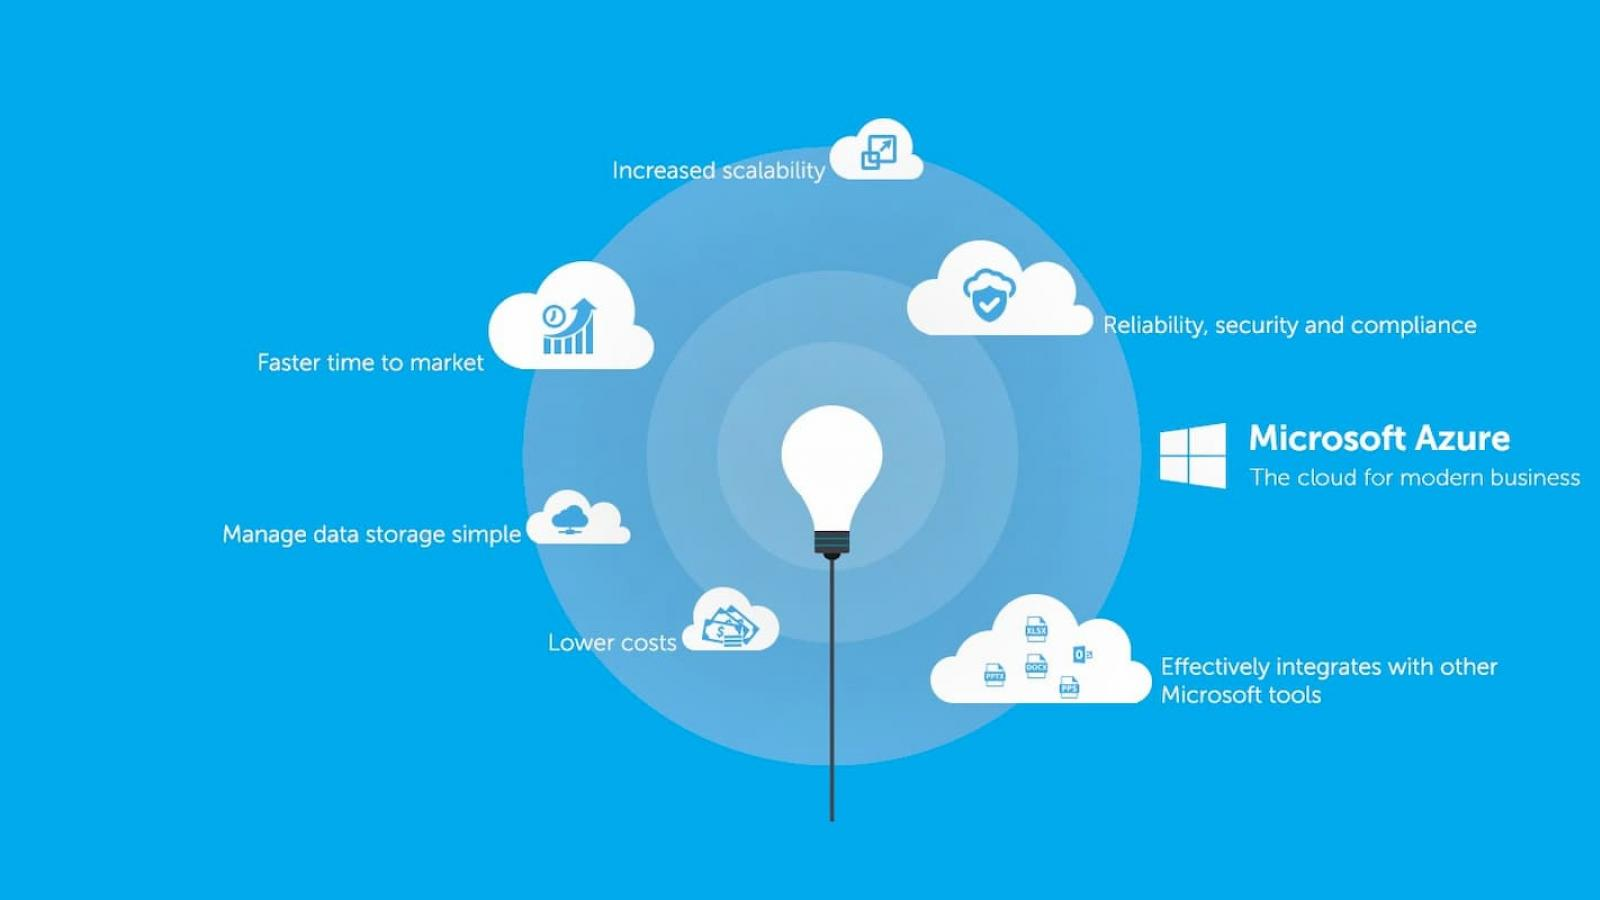 Microsoft Azure enables businesses to elevate customer experience